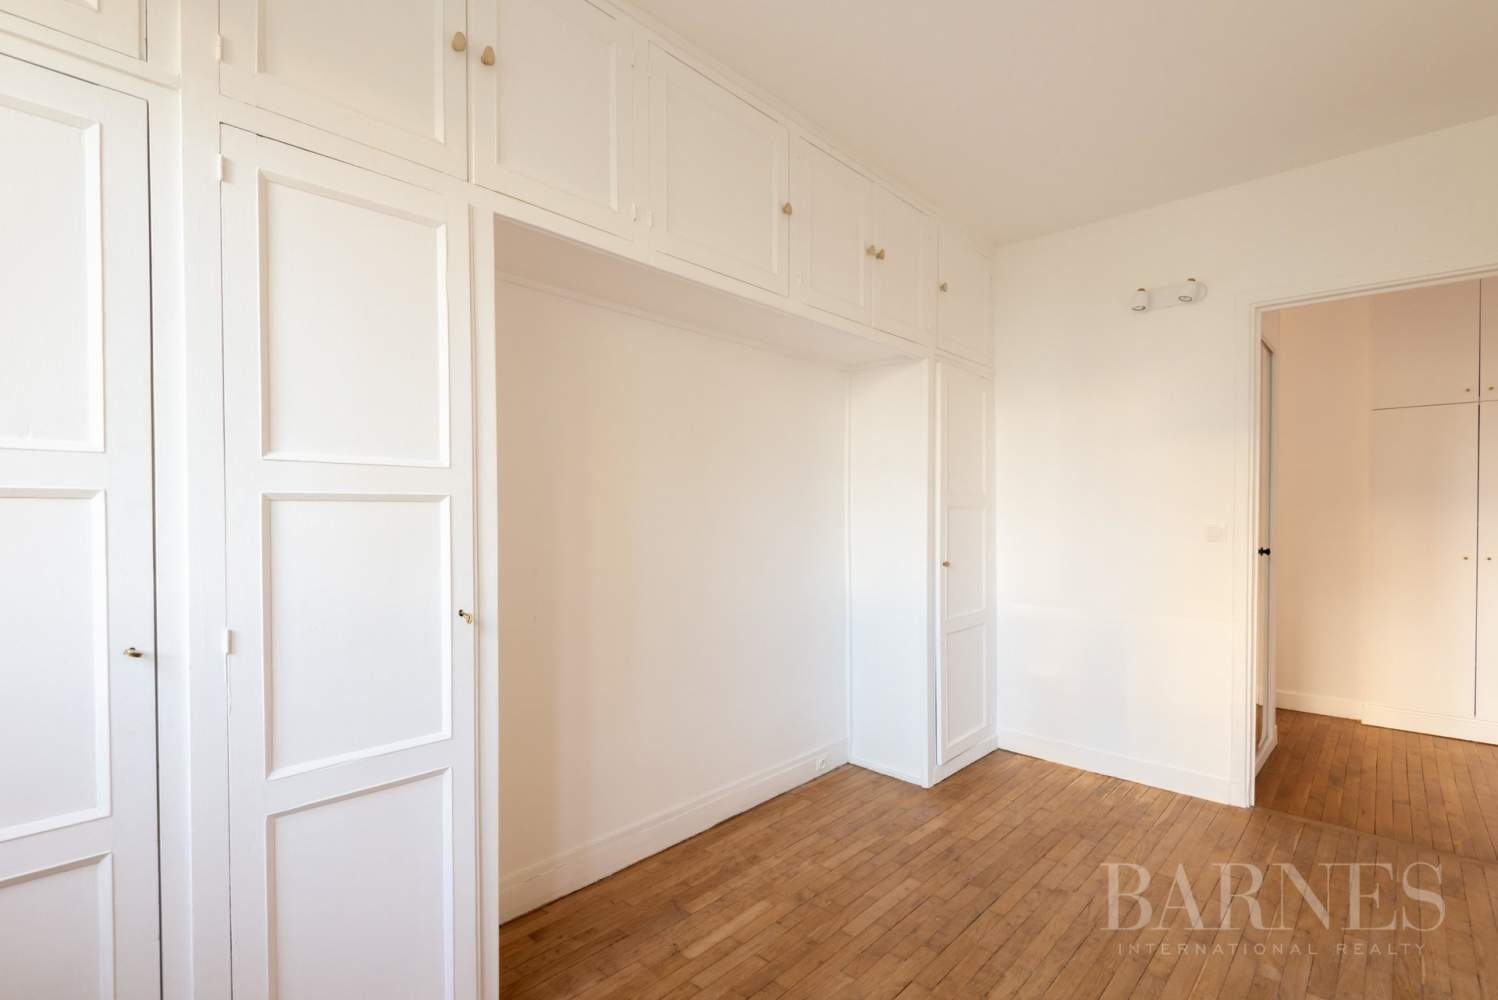 NEUILLY CHEZY APPARTEMENT 3 CHAMBRES VIDE PARKING BALCON picture 7